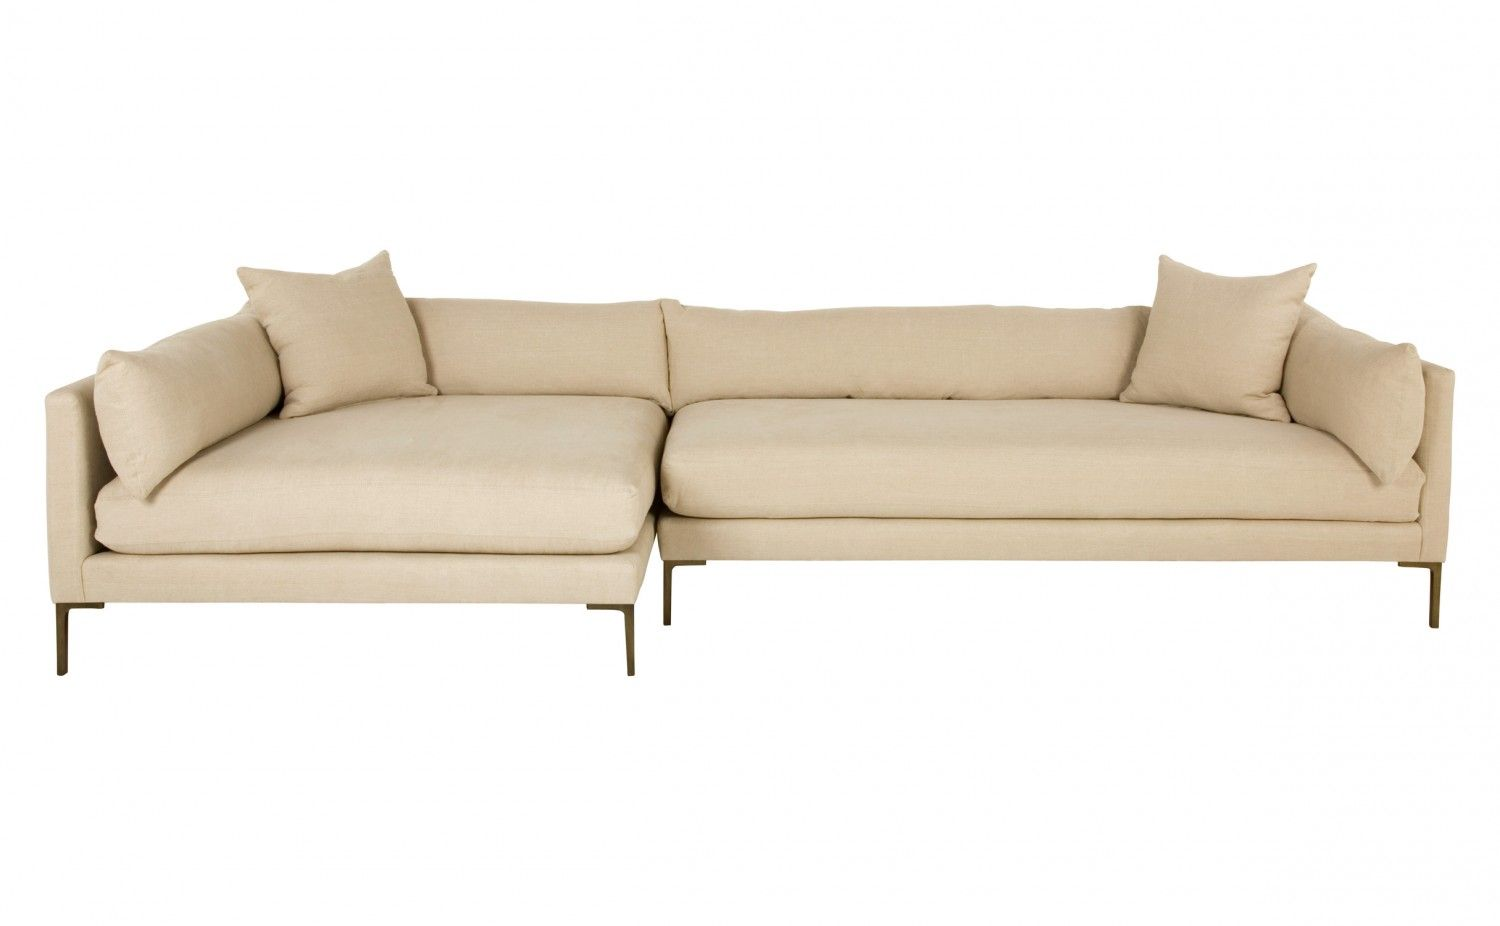 Sydney sectional sofas furniture jayson home